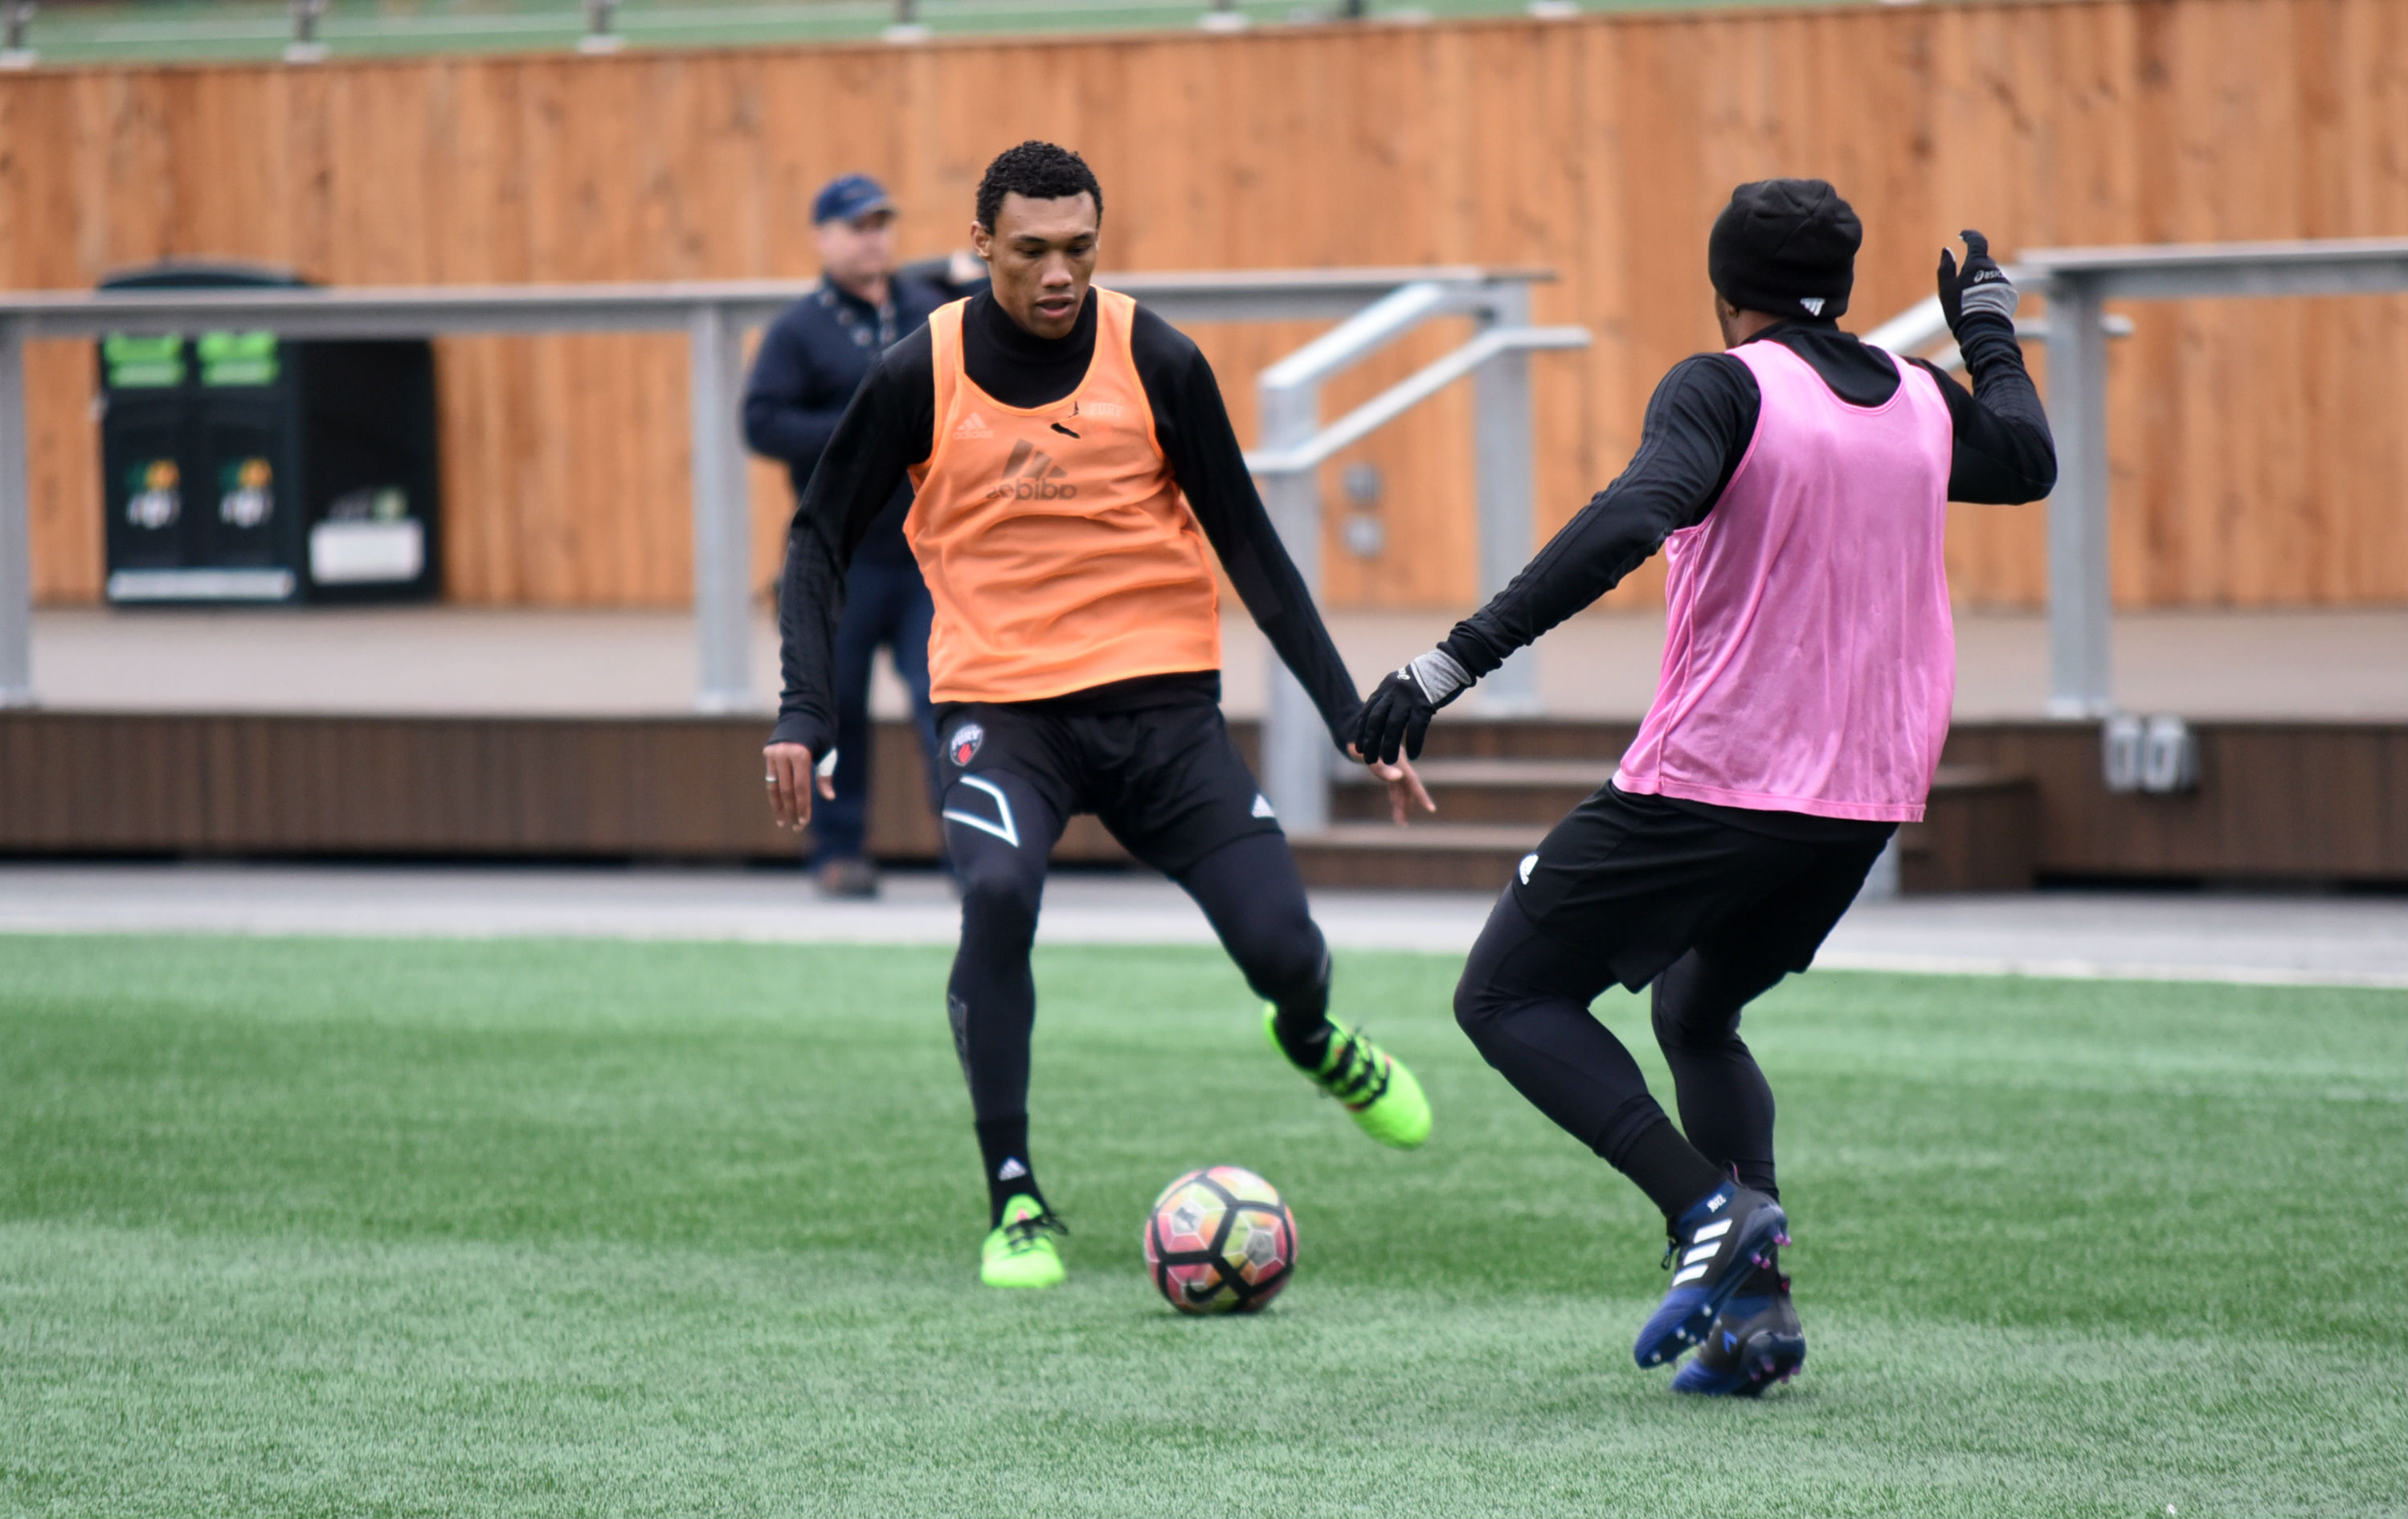 Steevan Dos Santos with the ball at his feet, with a defender in front of him, at training